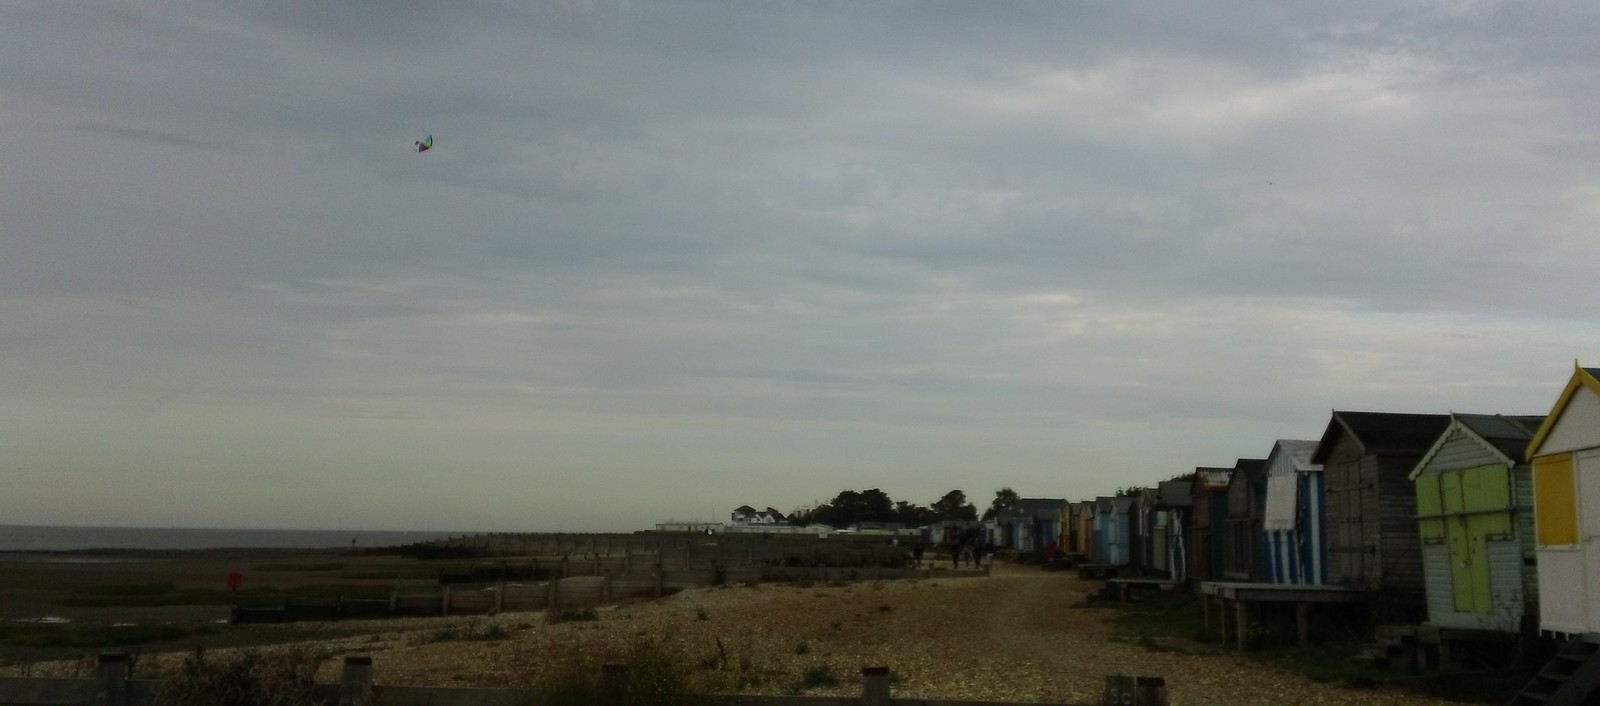 Kite above Whitstable beach huts ...not the bird but the stringed type